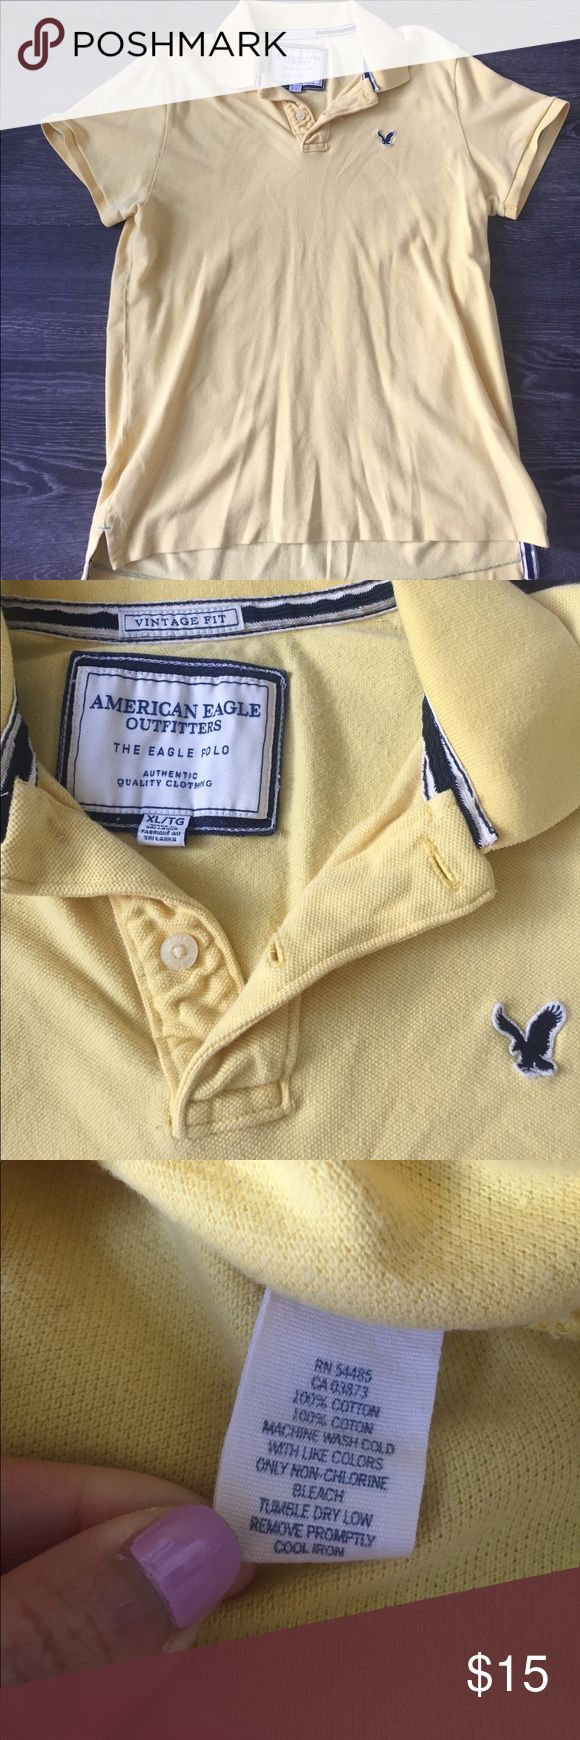 Men's AE yellow polo shirt Men's AE yellow polo shirt, size XL. Worn a few times, still in great condition. $15 OBO American Eagle Outfitters Shirts Polos